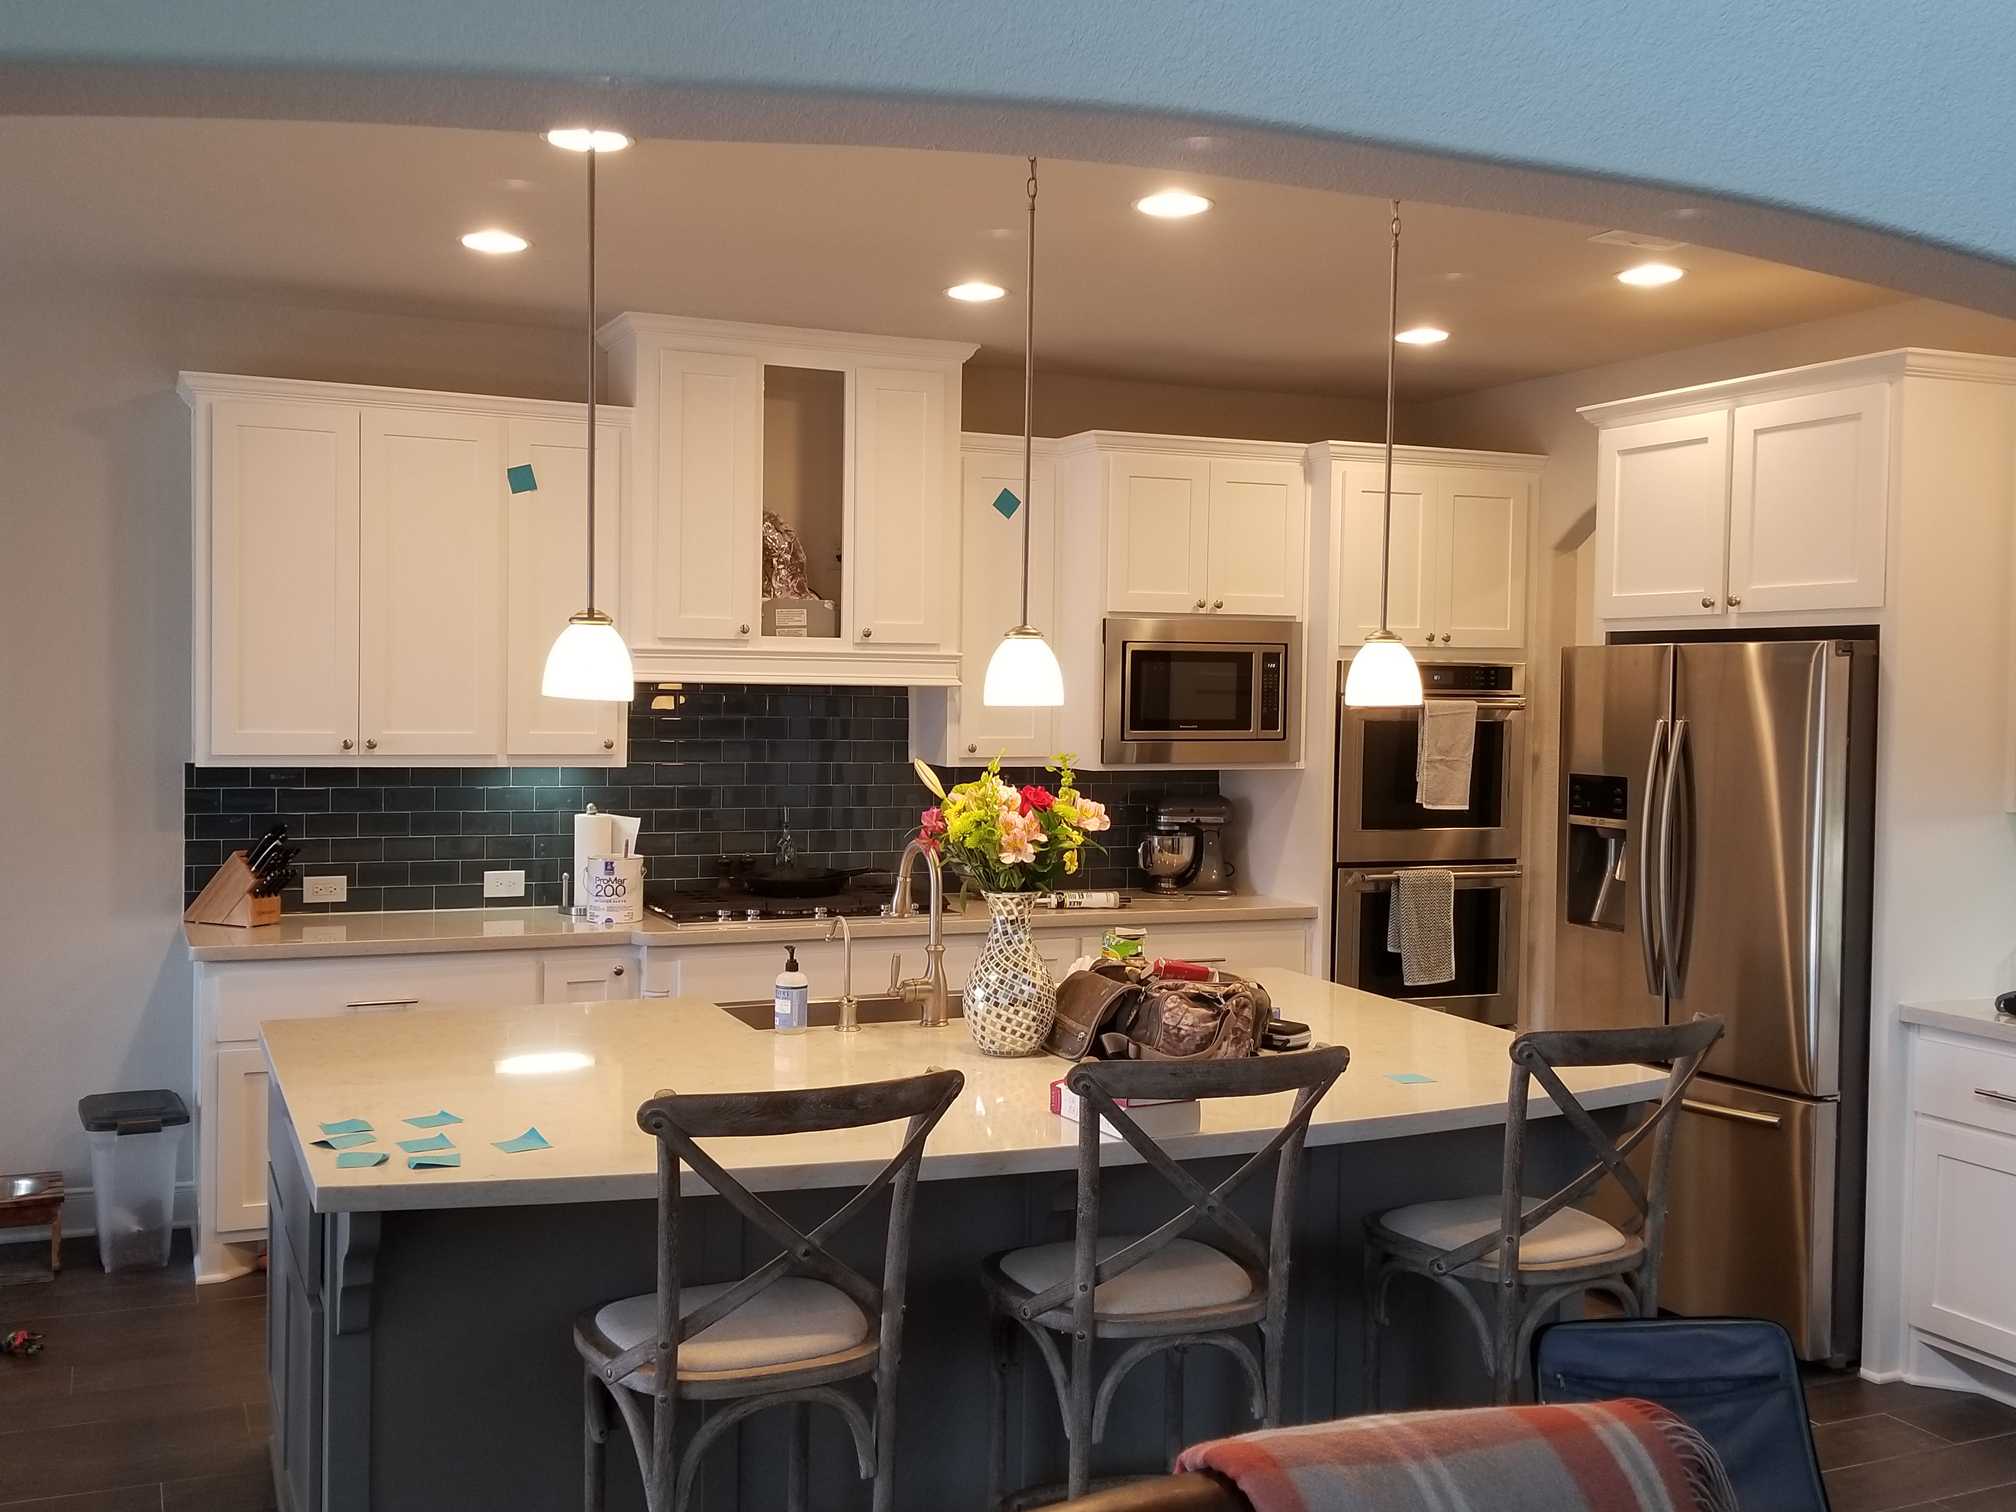 Buy custom kitchen cabinets factory direct in Matawan NJ, Buy custom bathroom cabinets in Matawan NJ, Buy custom shaker cabinets in Matawan NJ, Buy custom craftsman cabinets in Matawan NJ